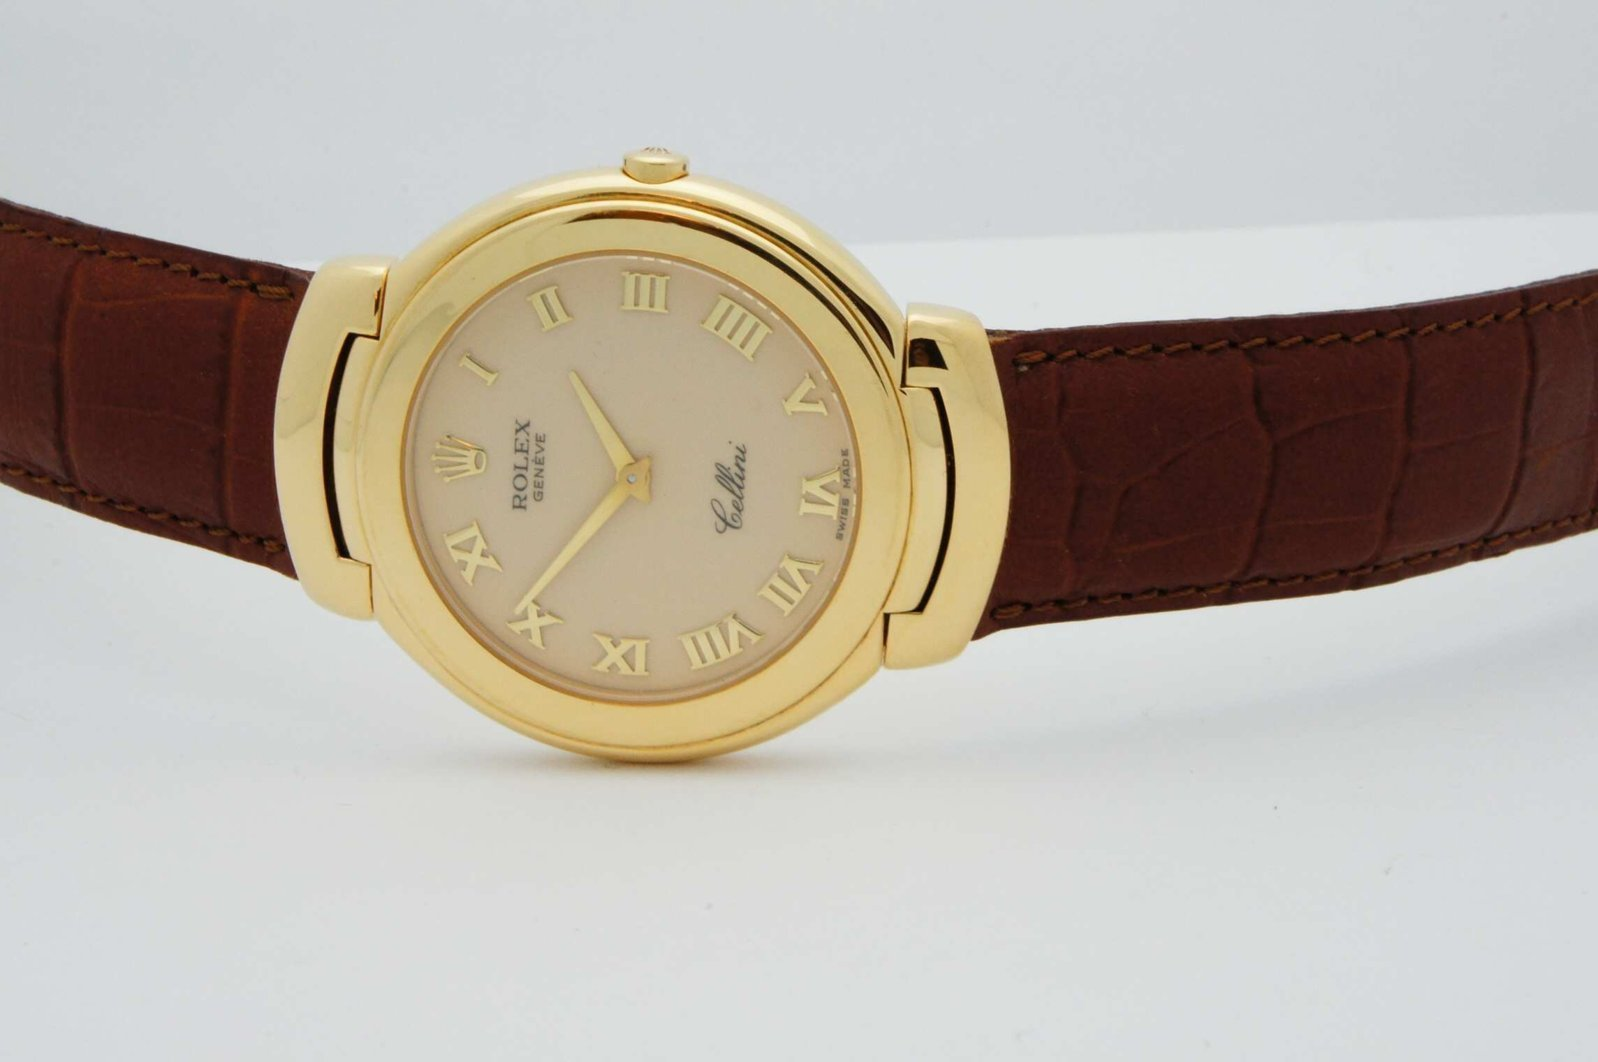 Rolex-Cellini-Geneve-Quartz-18kt-Yellow-Gold-2.jpg